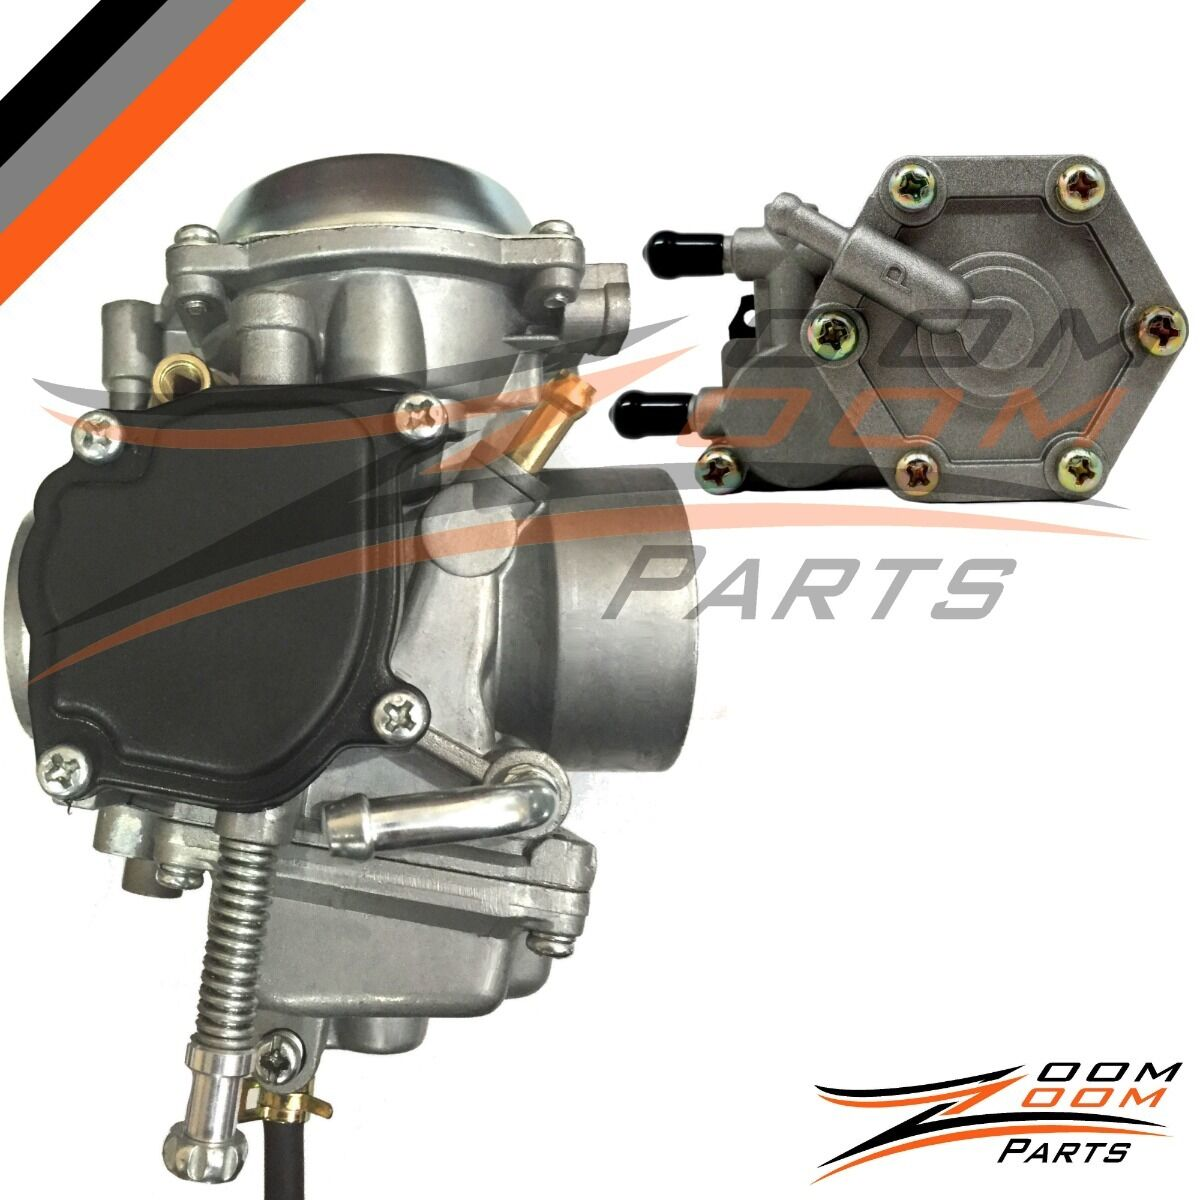 Polaris Sportsman 500 Carburetor Fuel Pump 4x4 Atv Quad Carb 2001 2004 Filter Non Ho 1 Of 6free Shipping